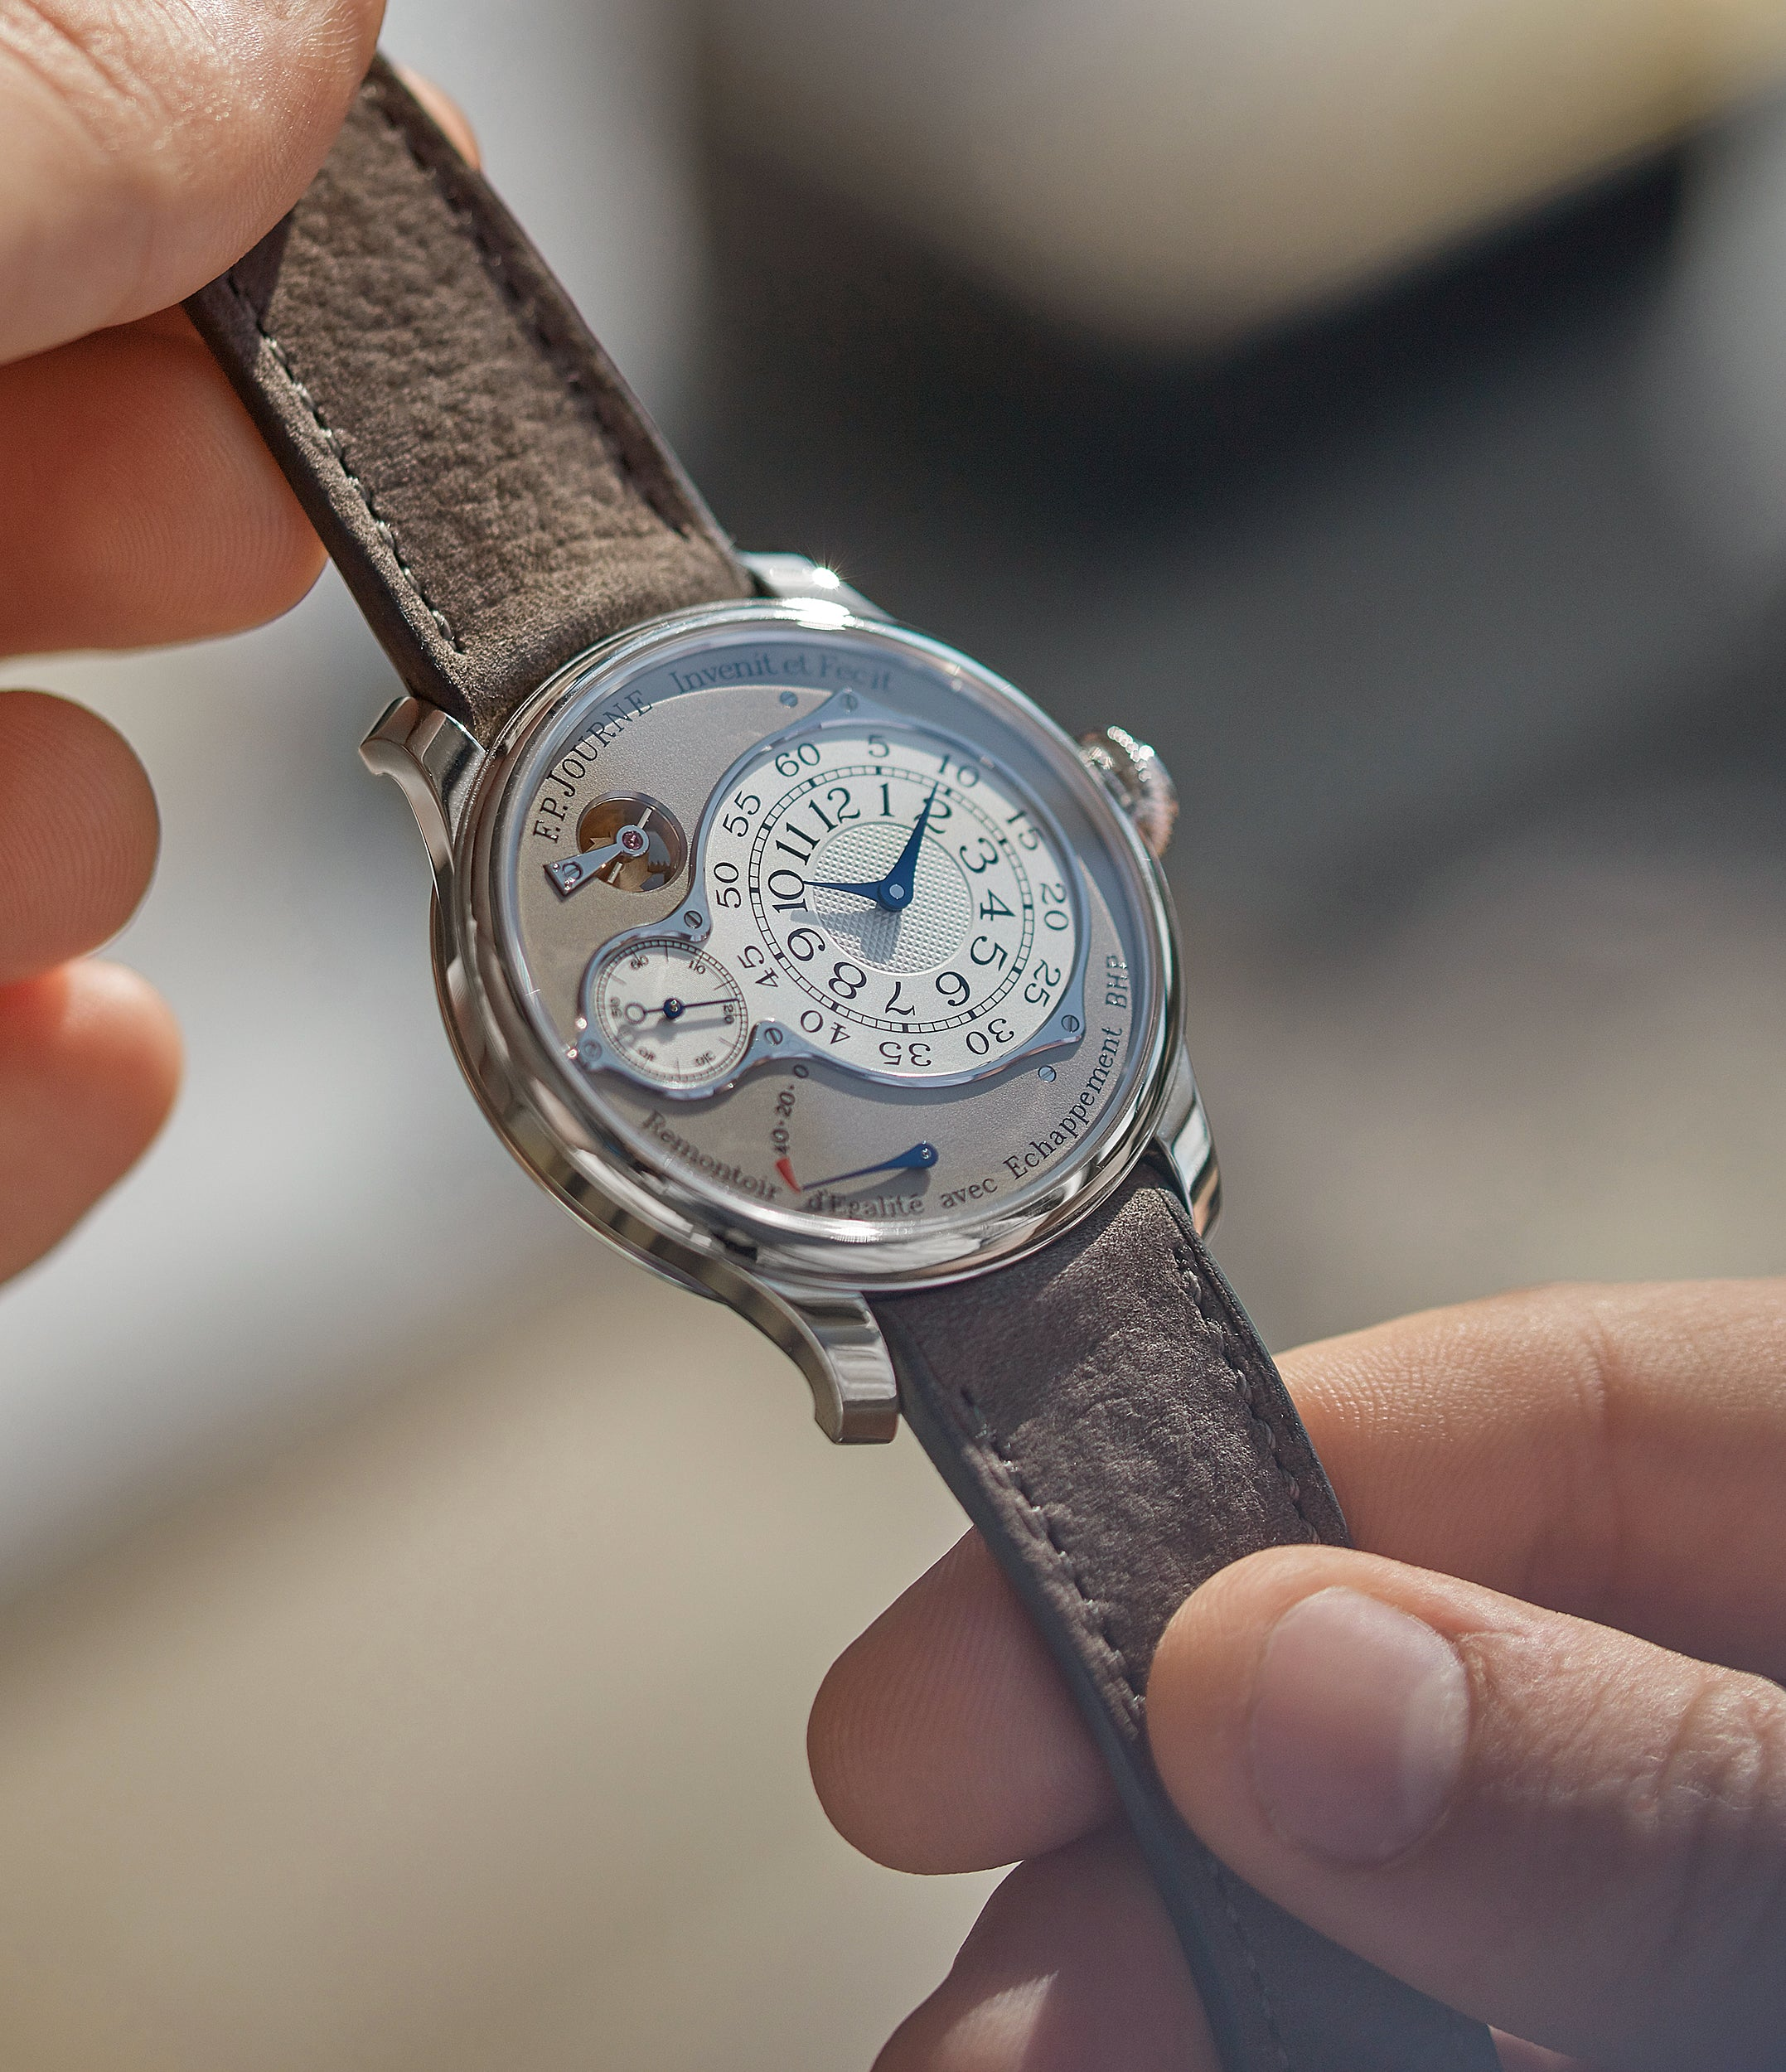 hands-on with F. P. Journe Chronometre Optimum grey dial time-only dress watch for sale online at A Collected Man London UK specilalist of independent watchmakers